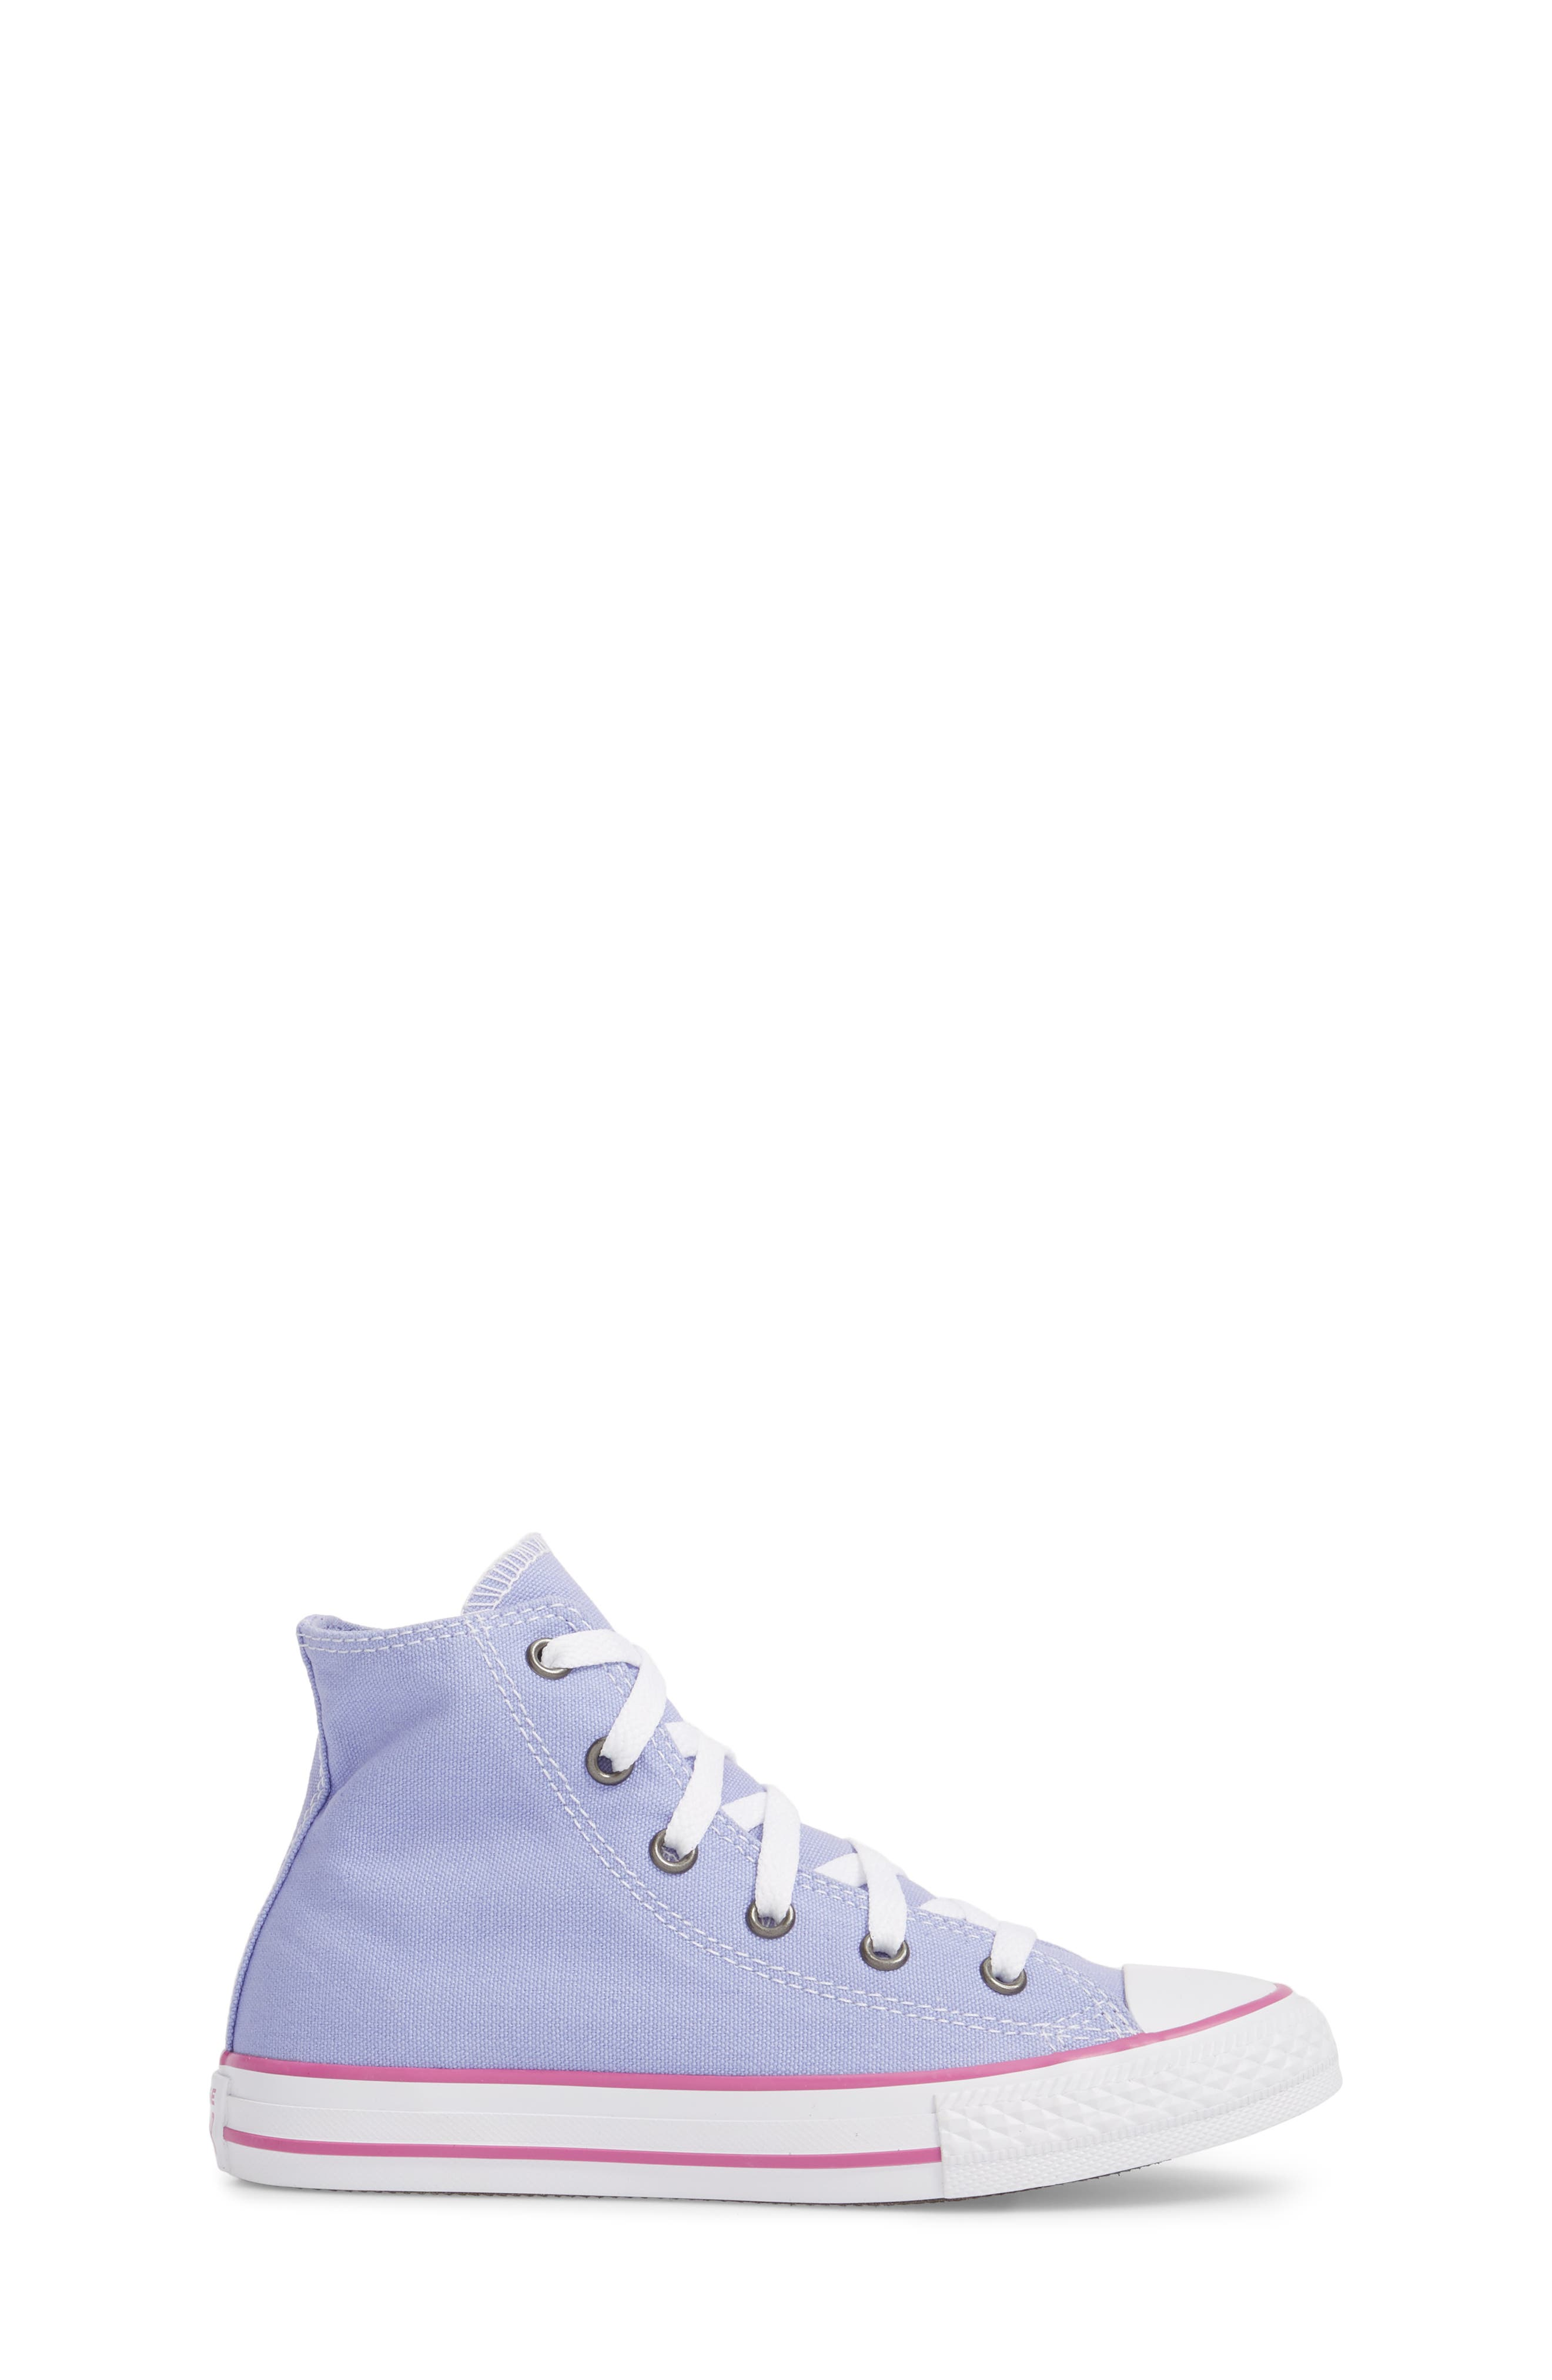 Chuck Taylor<sup>®</sup> All Star<sup>®</sup> High Top Sneaker,                             Alternate thumbnail 3, color,                             Twilight Purple